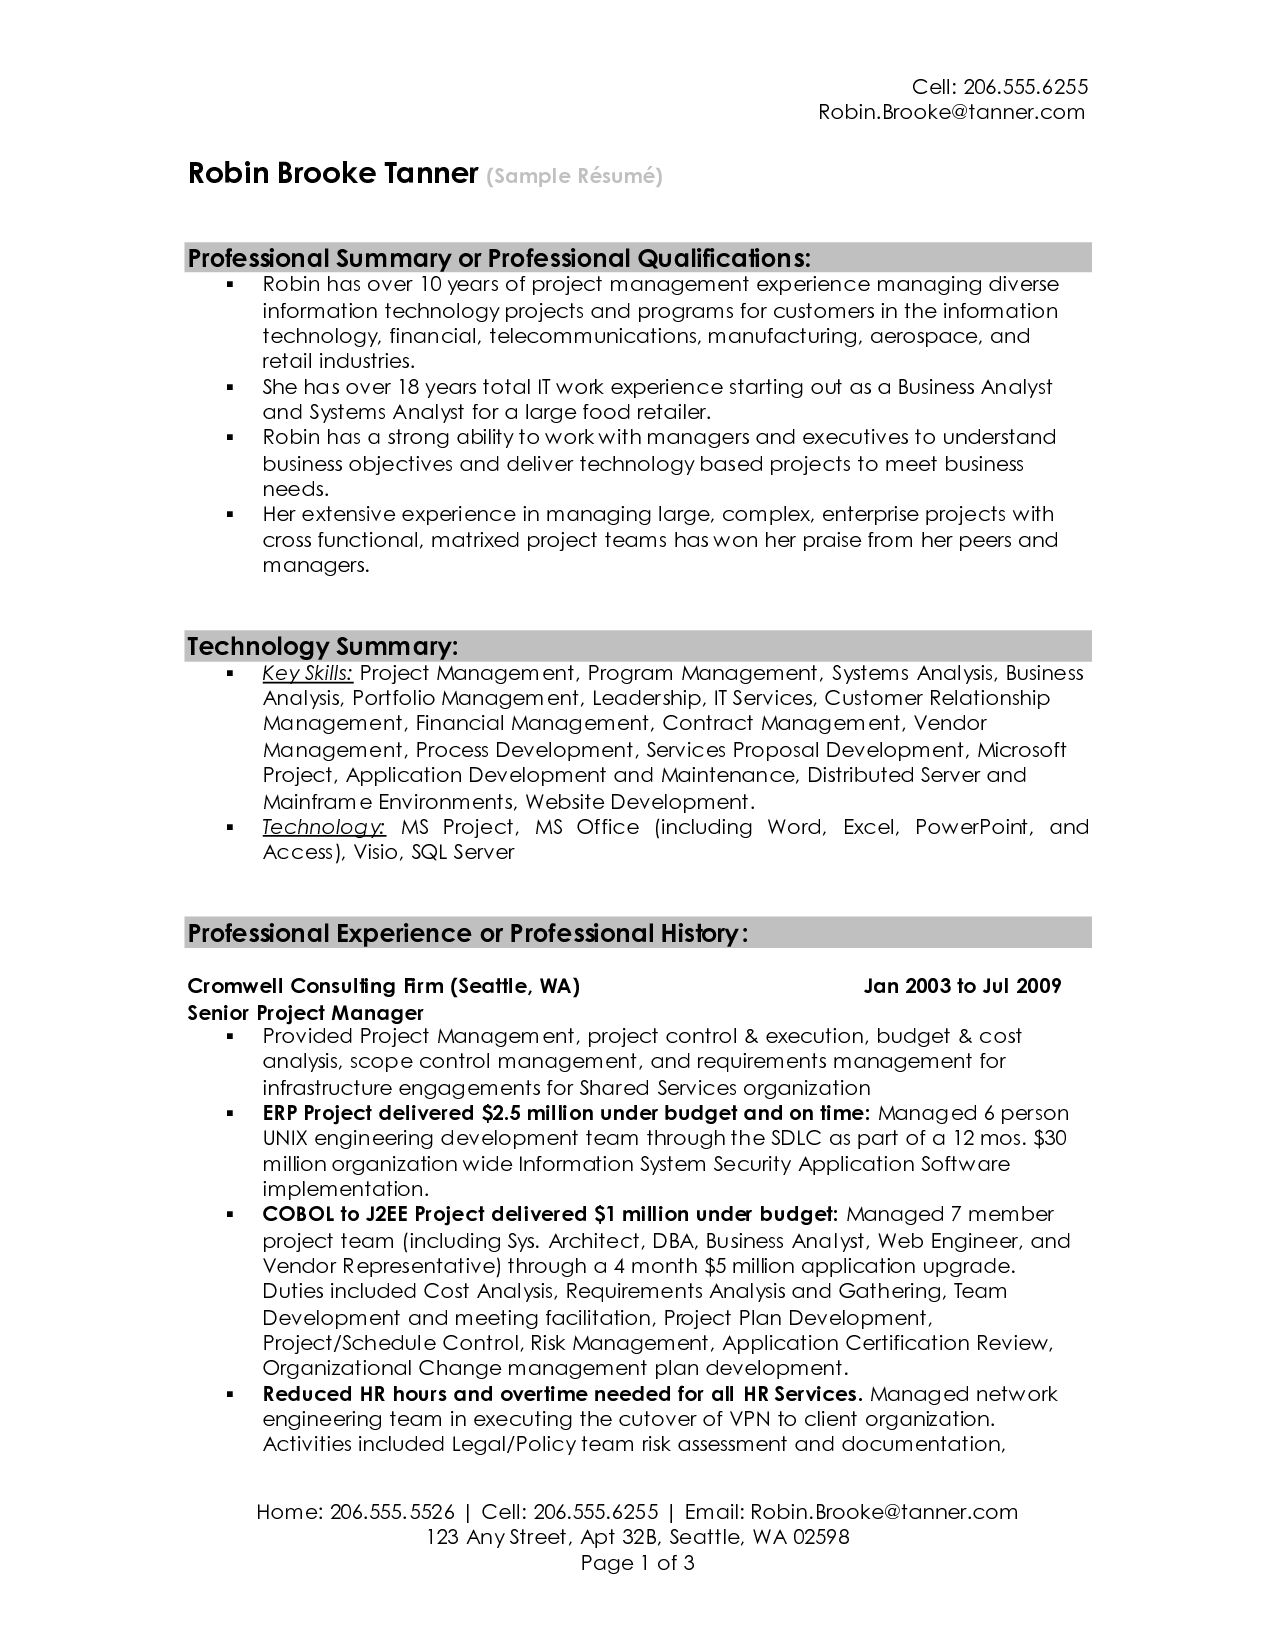 Examples Of Professional Summary For Resume